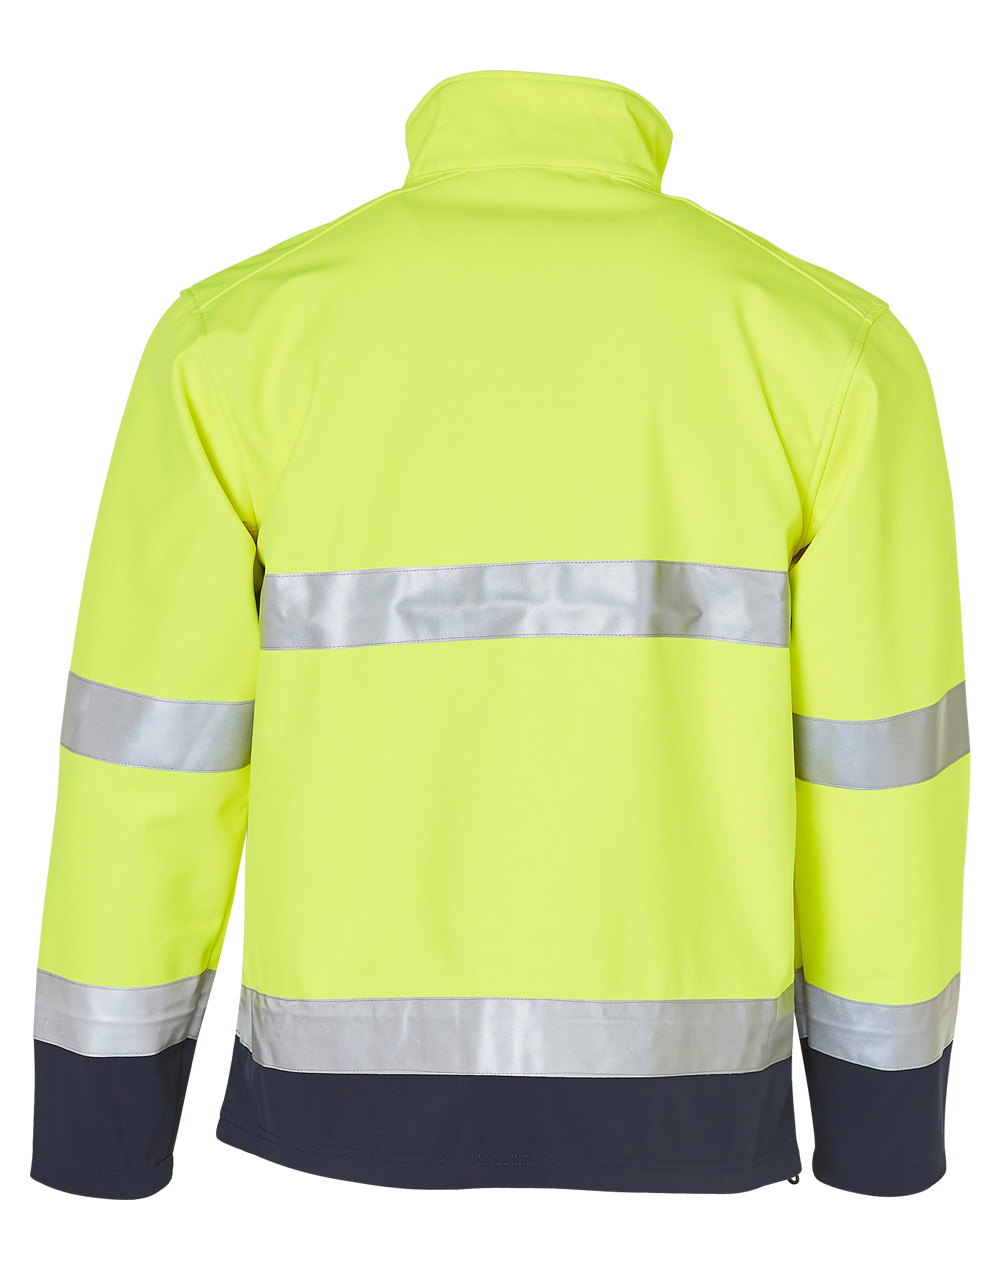 https://s3-ap-southeast-1.amazonaws.com/ws-imgs/WORKWEAR/SW29_YellowNavy_Back.jpg